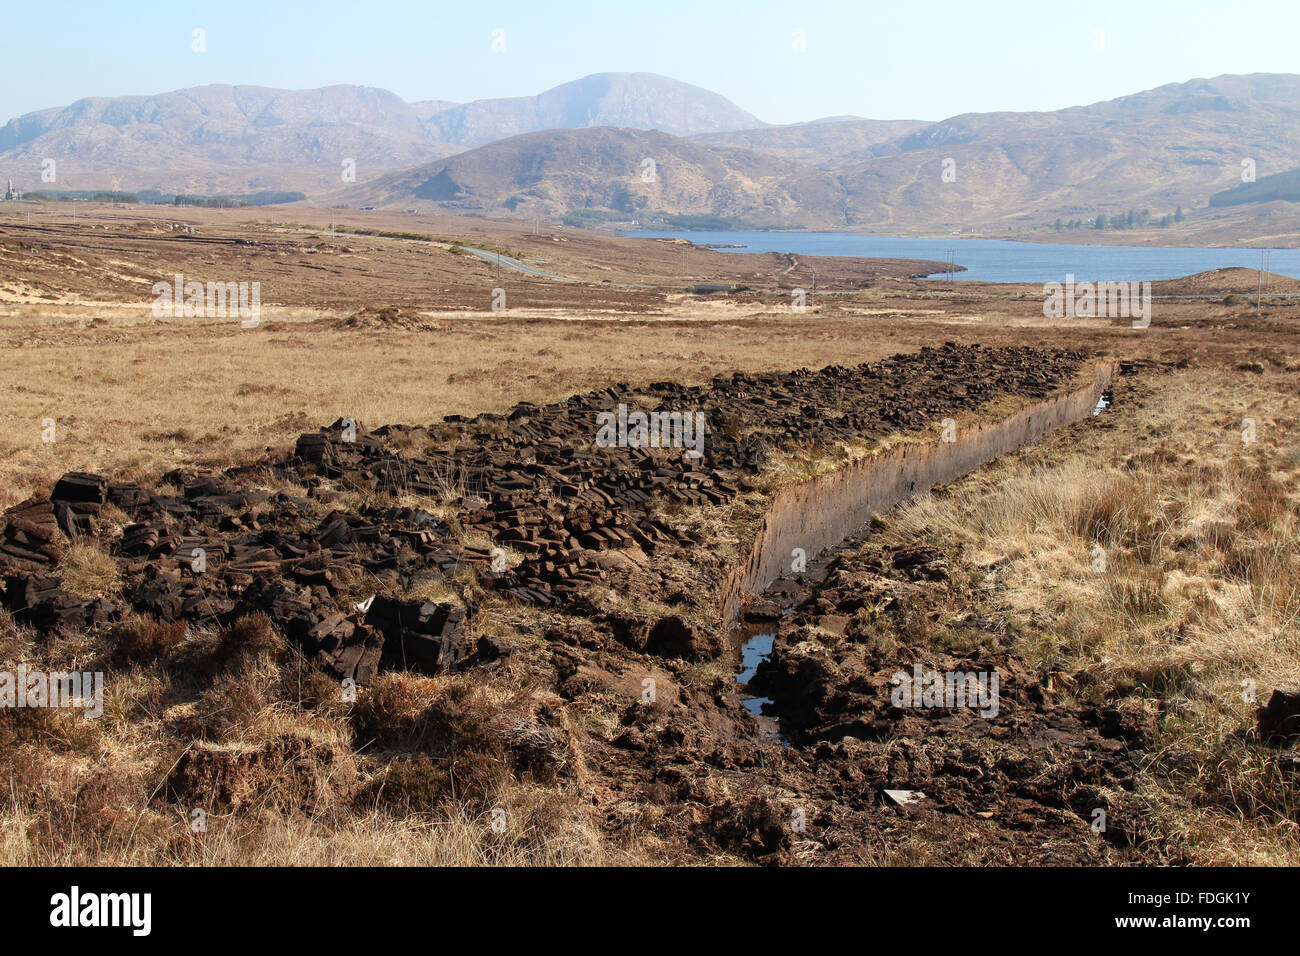 Peat bog and piles of cut turf drying in the sunshine.  County Donegal, Ireland. - Stock Image